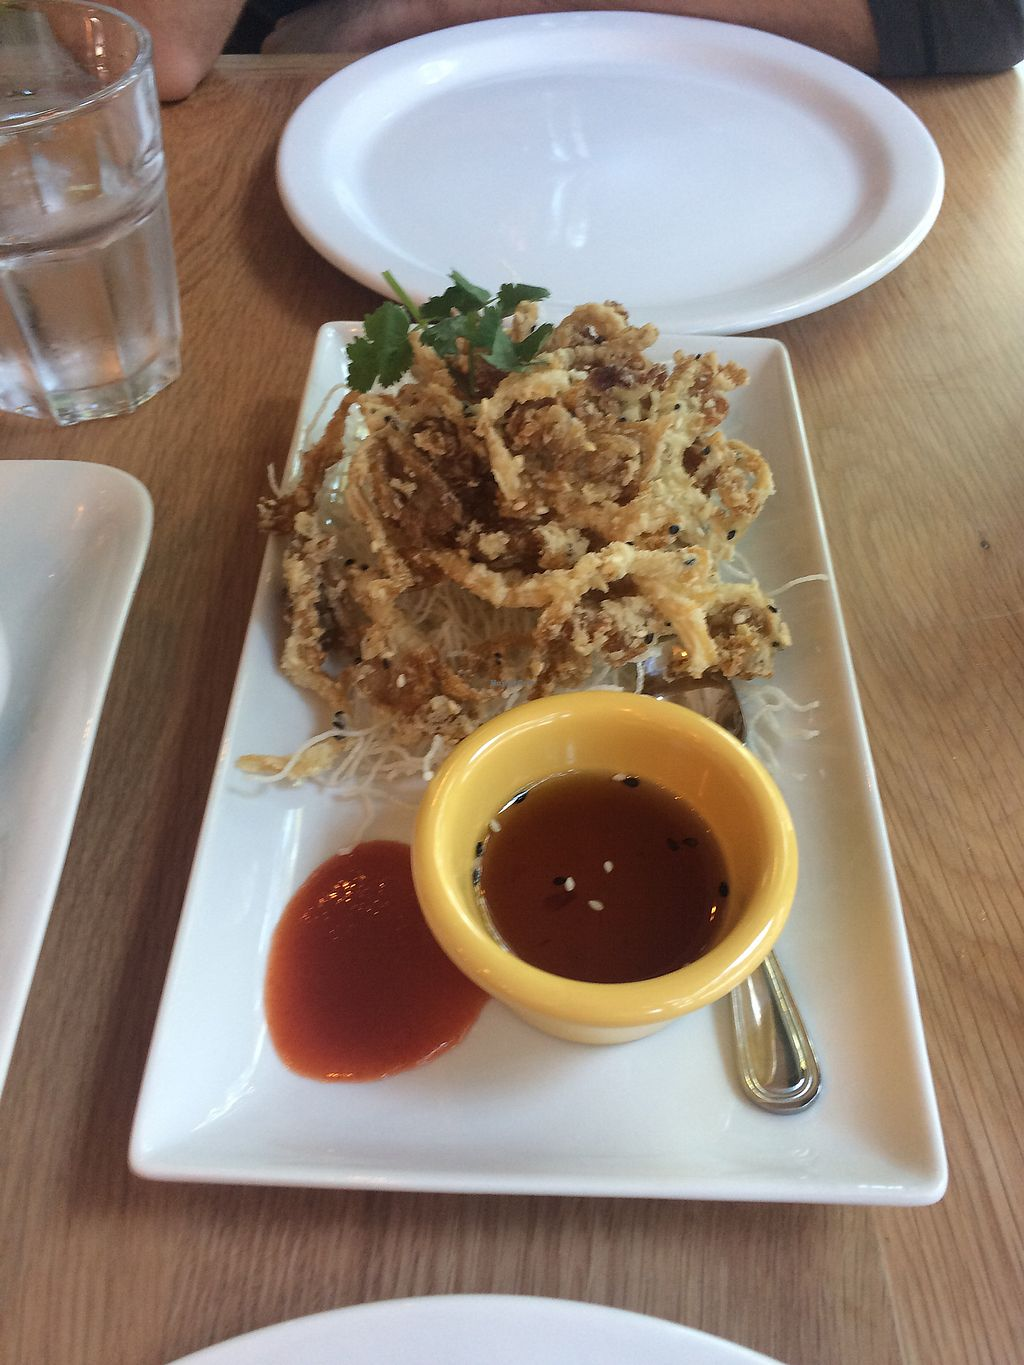 "Photo of Kati Vegan Thai  by <a href=""/members/profile/fullbellyhappyheart"">fullbellyhappyheart</a> <br/>Angel wings (like mushroom calamari) <br/> September 24, 2017  - <a href='/contact/abuse/image/101505/307893'>Report</a>"